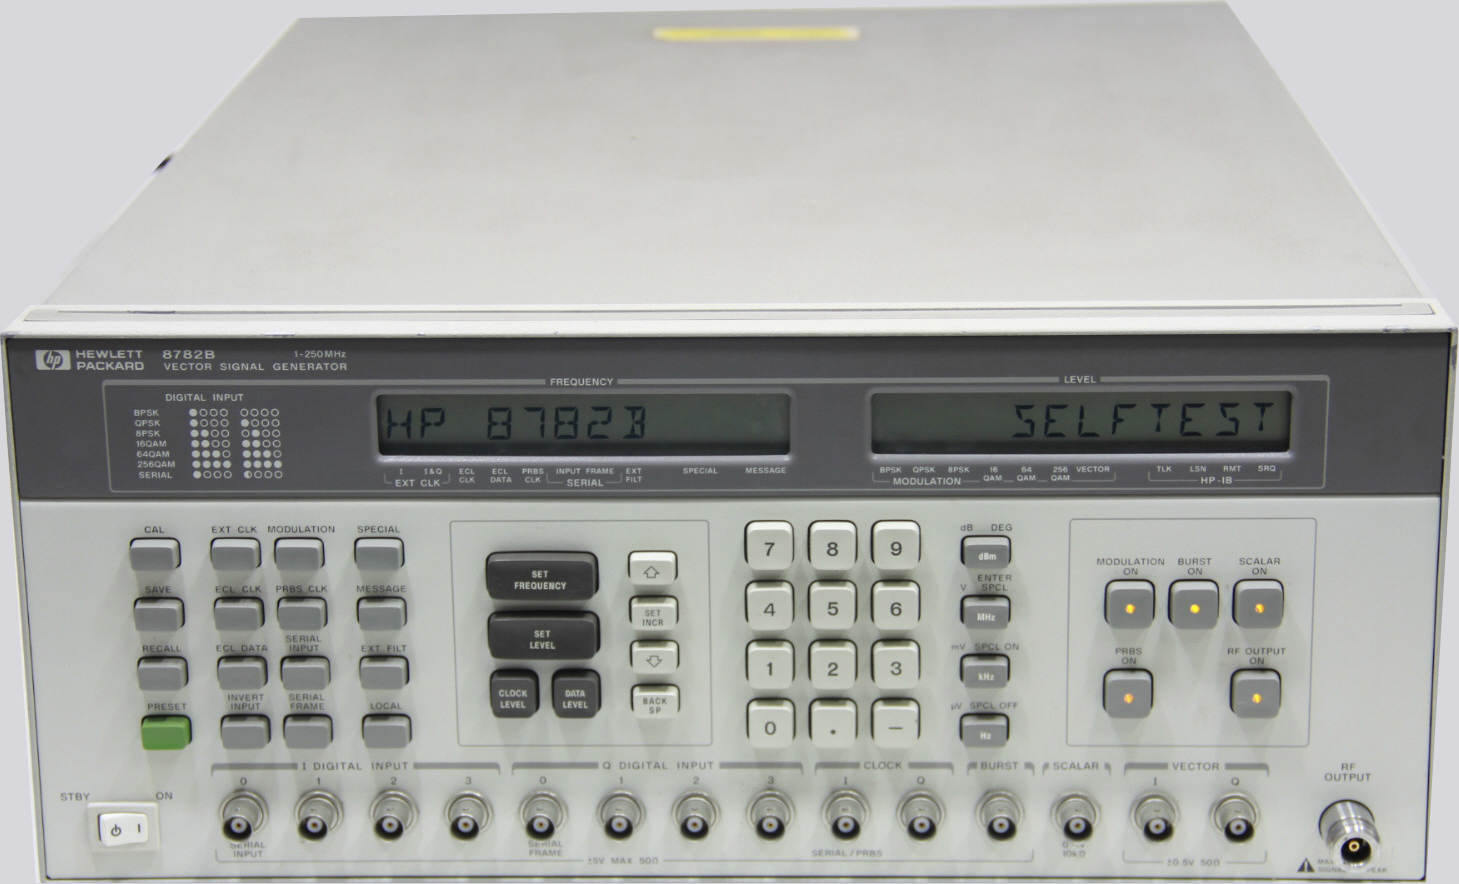 Agilent / HP 8782B for sale